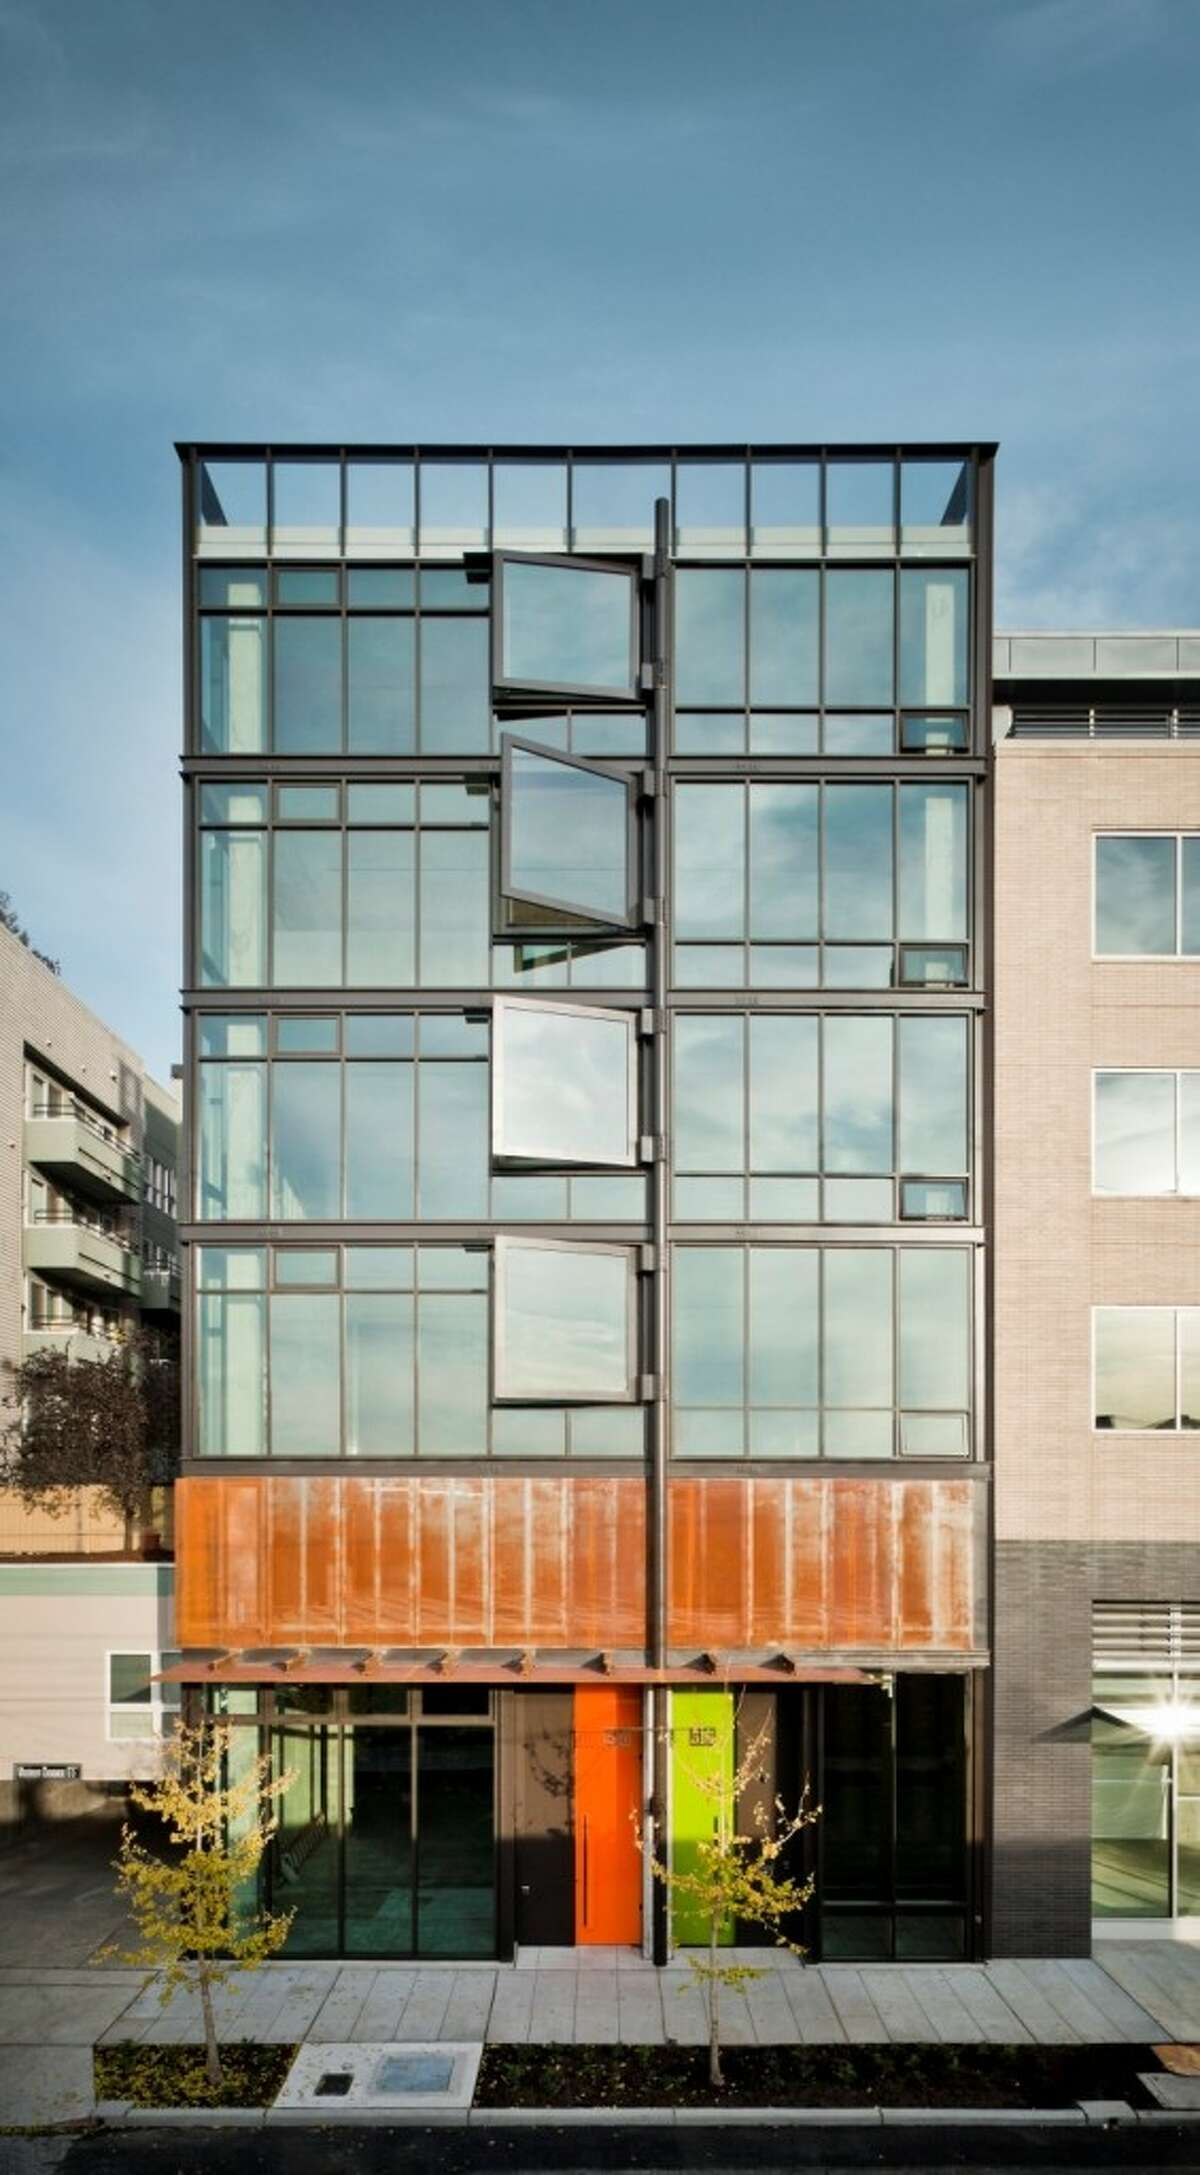 The street-facing side of the building features 8-foot by 7-foot hinged windows that also swing open. Unit 600, a 2,237-square-foot shell, is listed for $1.175 million.